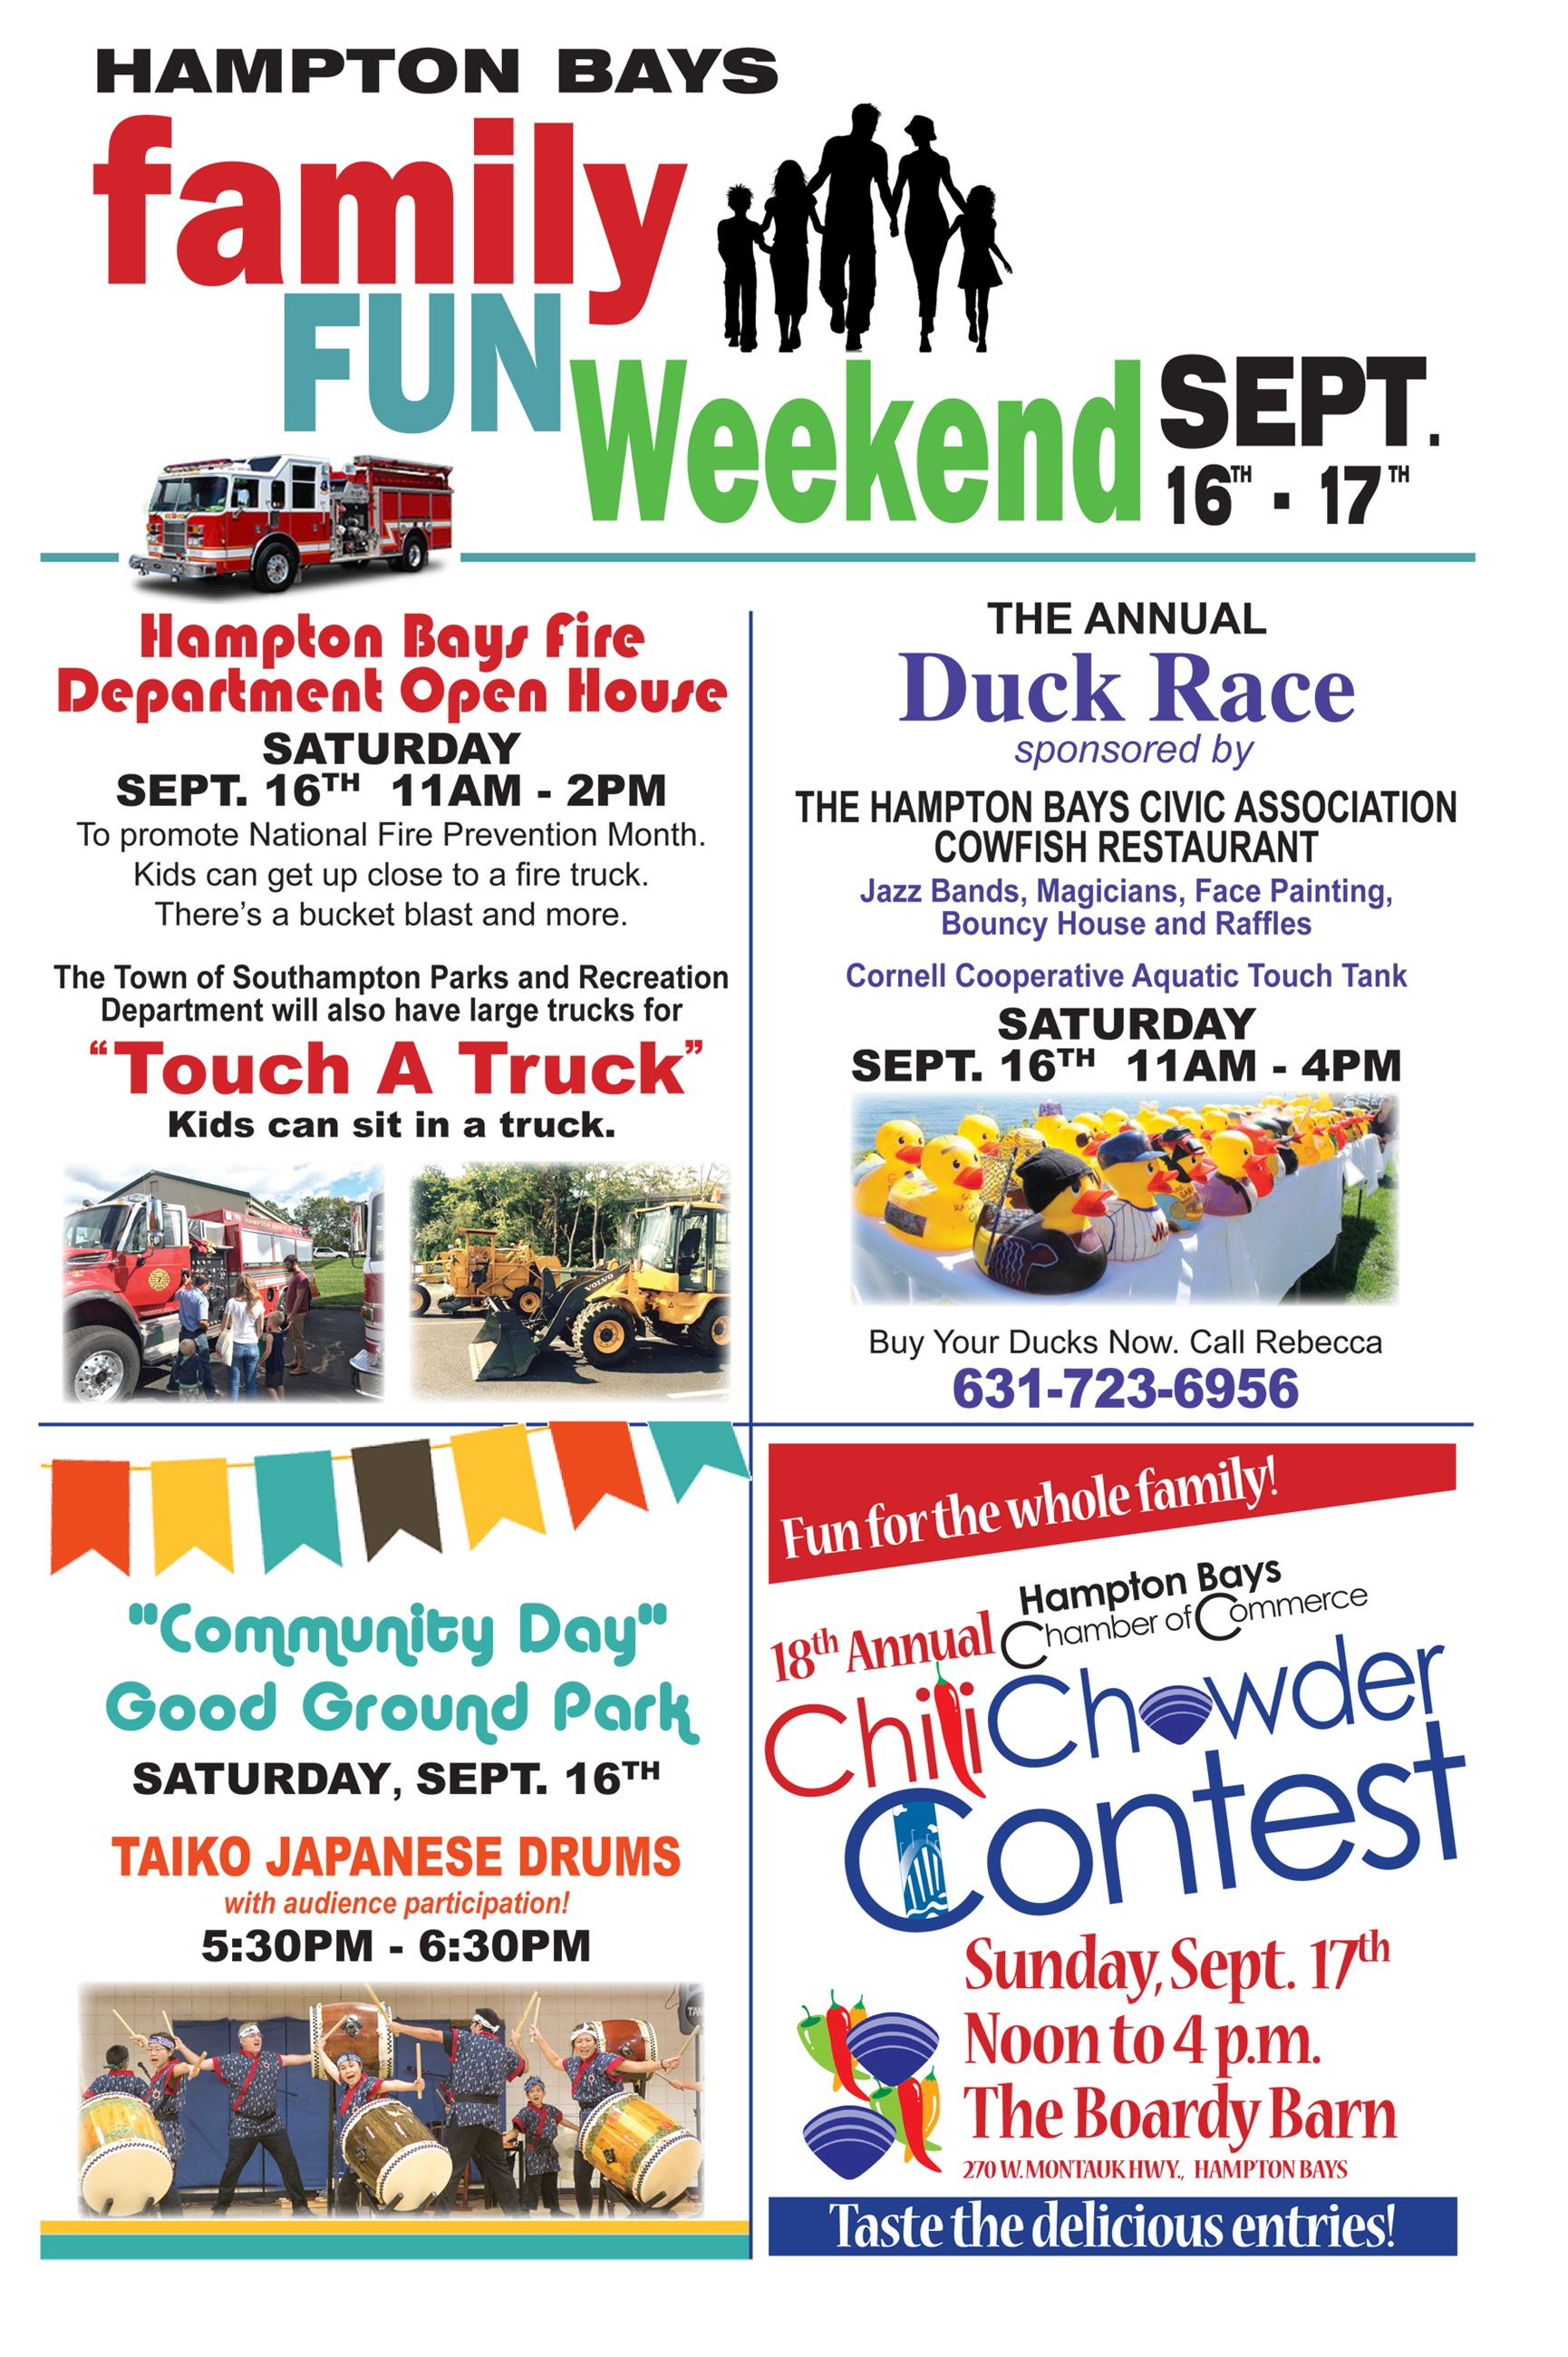 Hampton Bays Family Fun Weekend SeptFinal